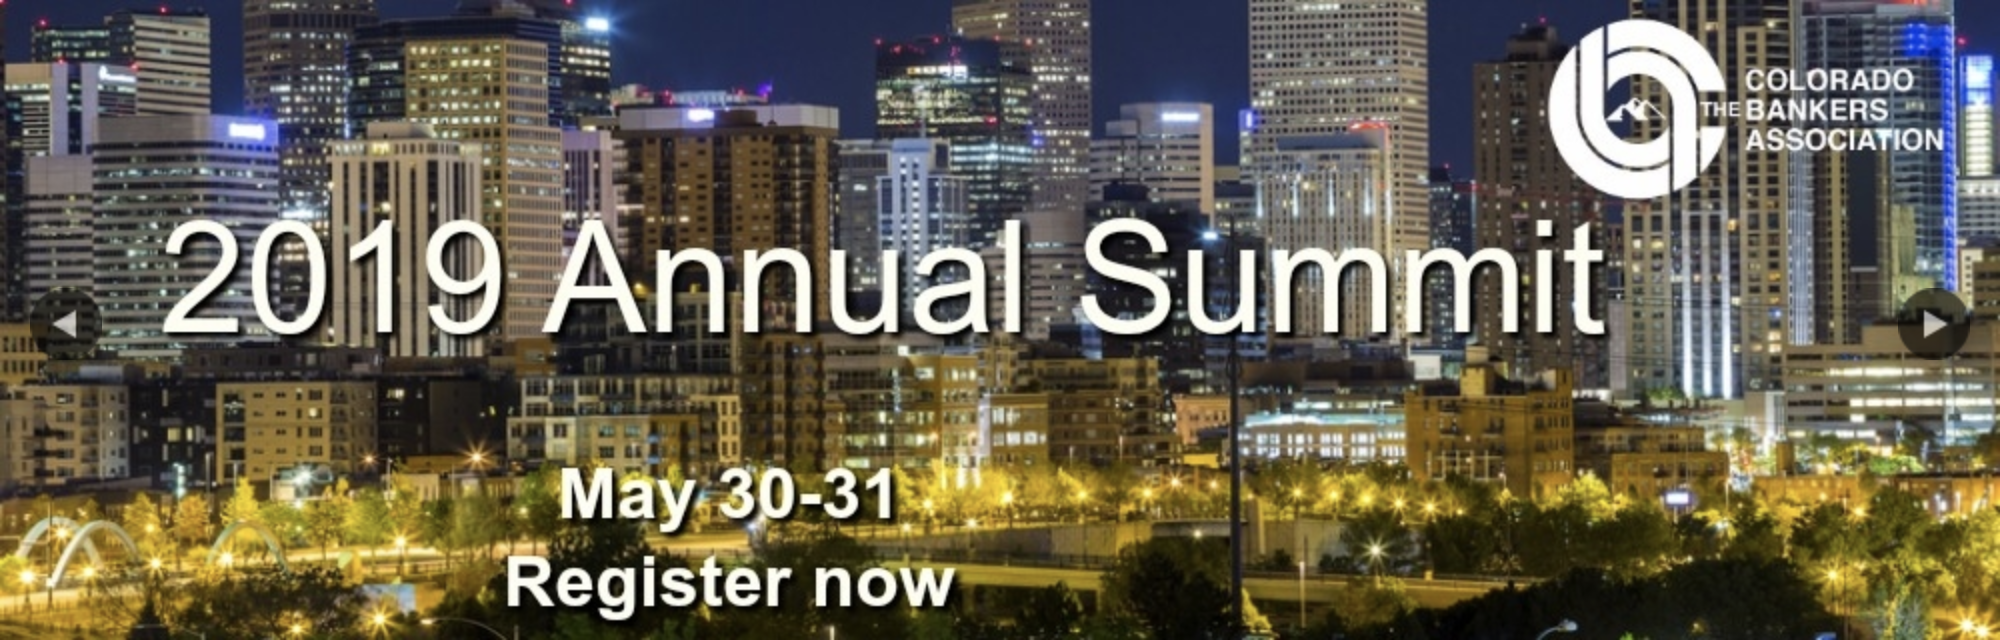 Golden Eagle Insurance to sponsor Colorado Bankers 2019 Annual Summit